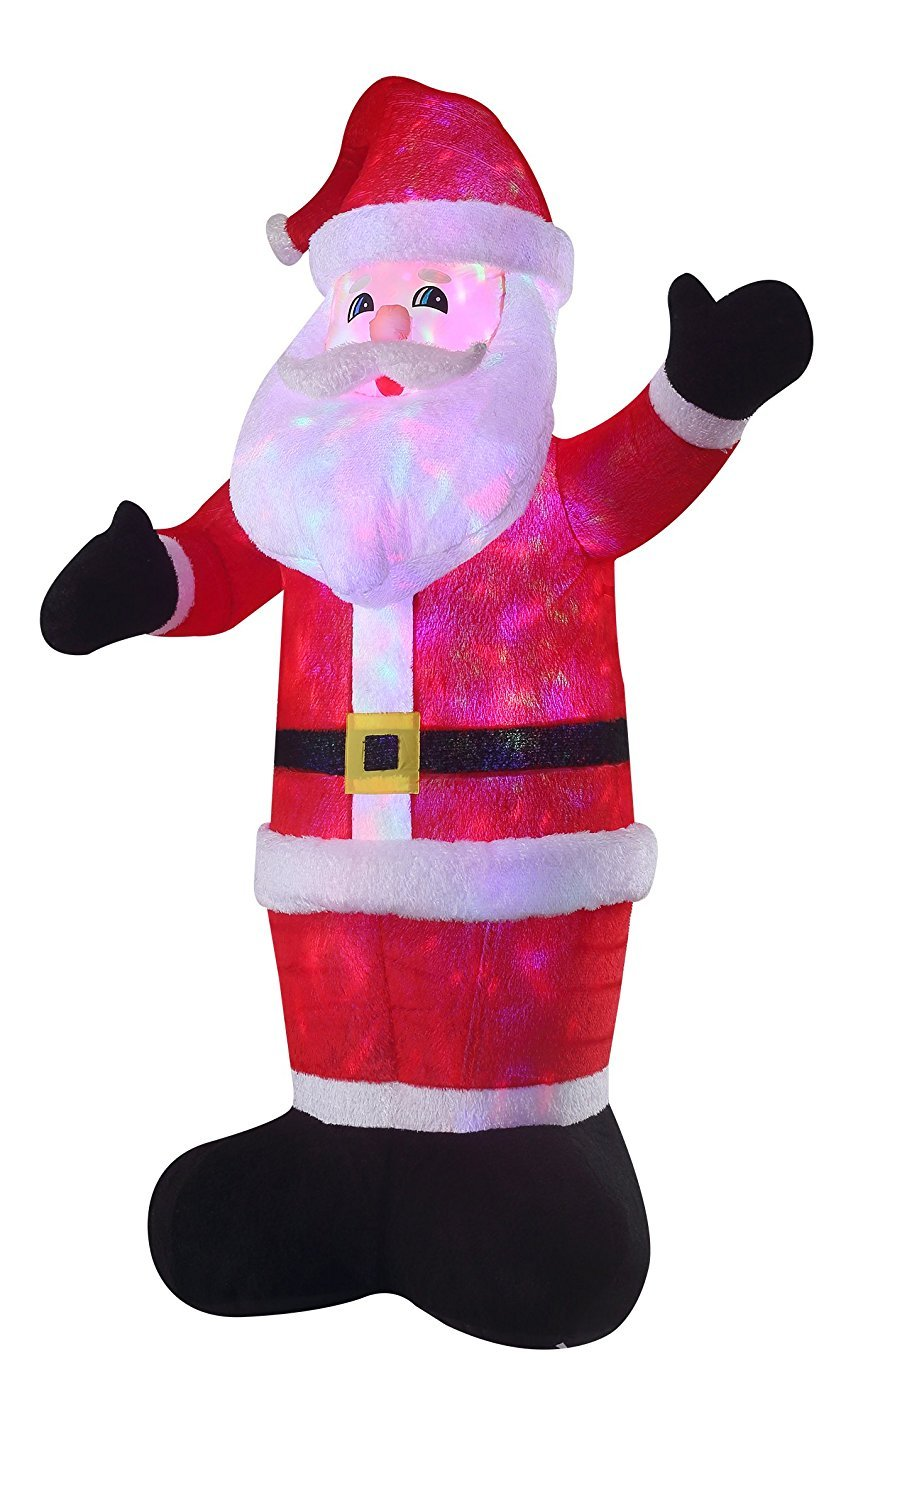 New 8 FT Inflatable Plush Santa Clause With 2pcs Disco Lights Christmas X'mas Decoration by Beyond Shop USA (Image #4)